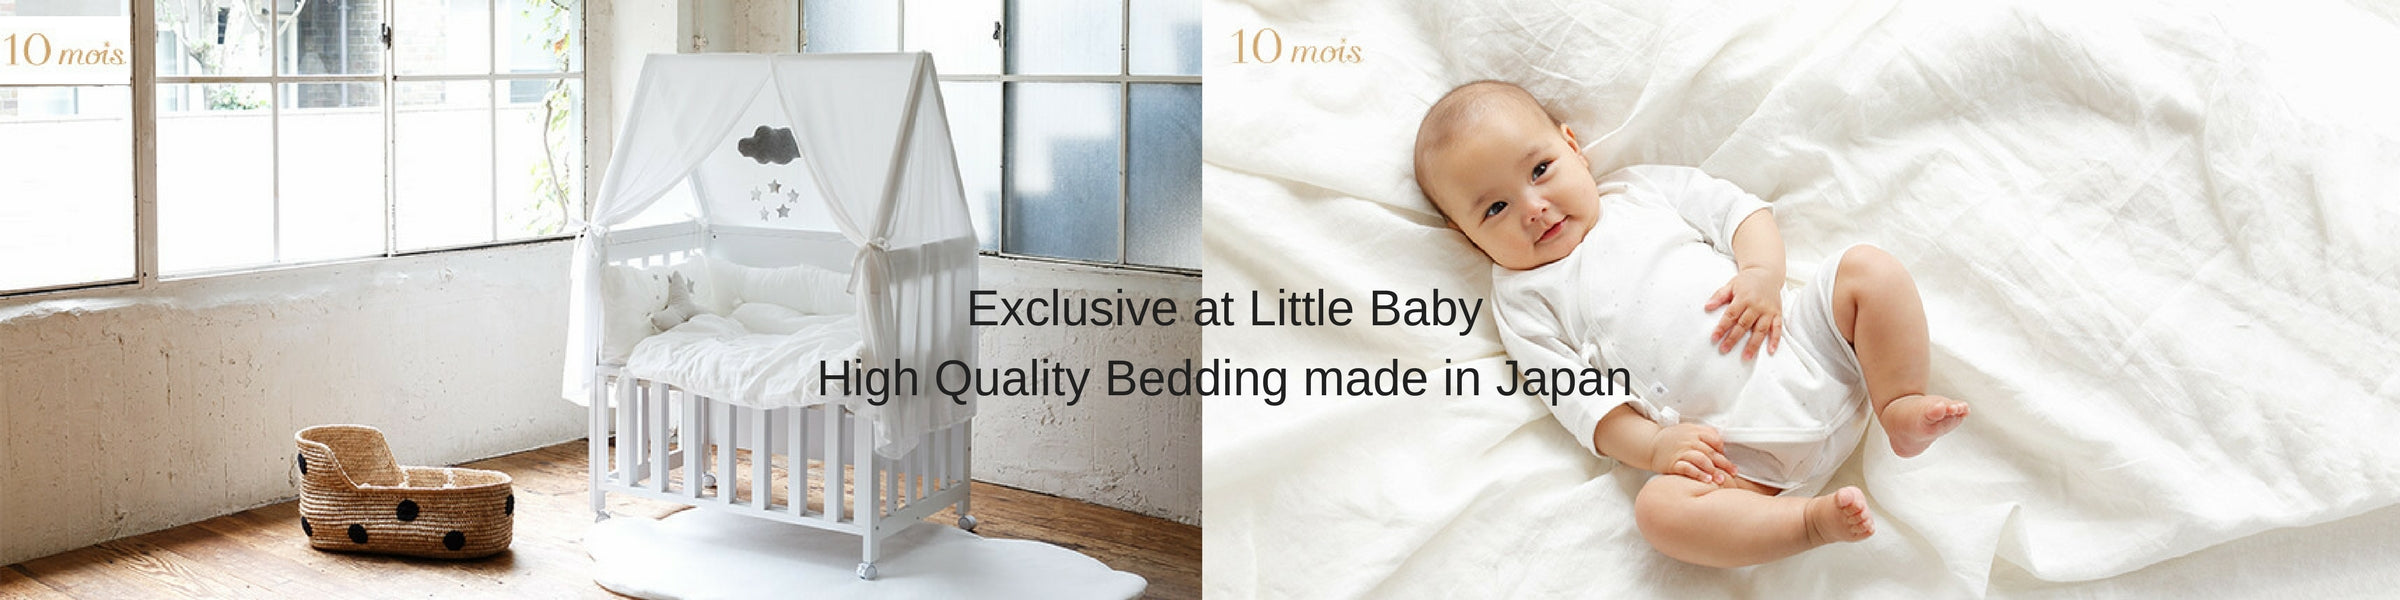 10mois children bedding from Japan